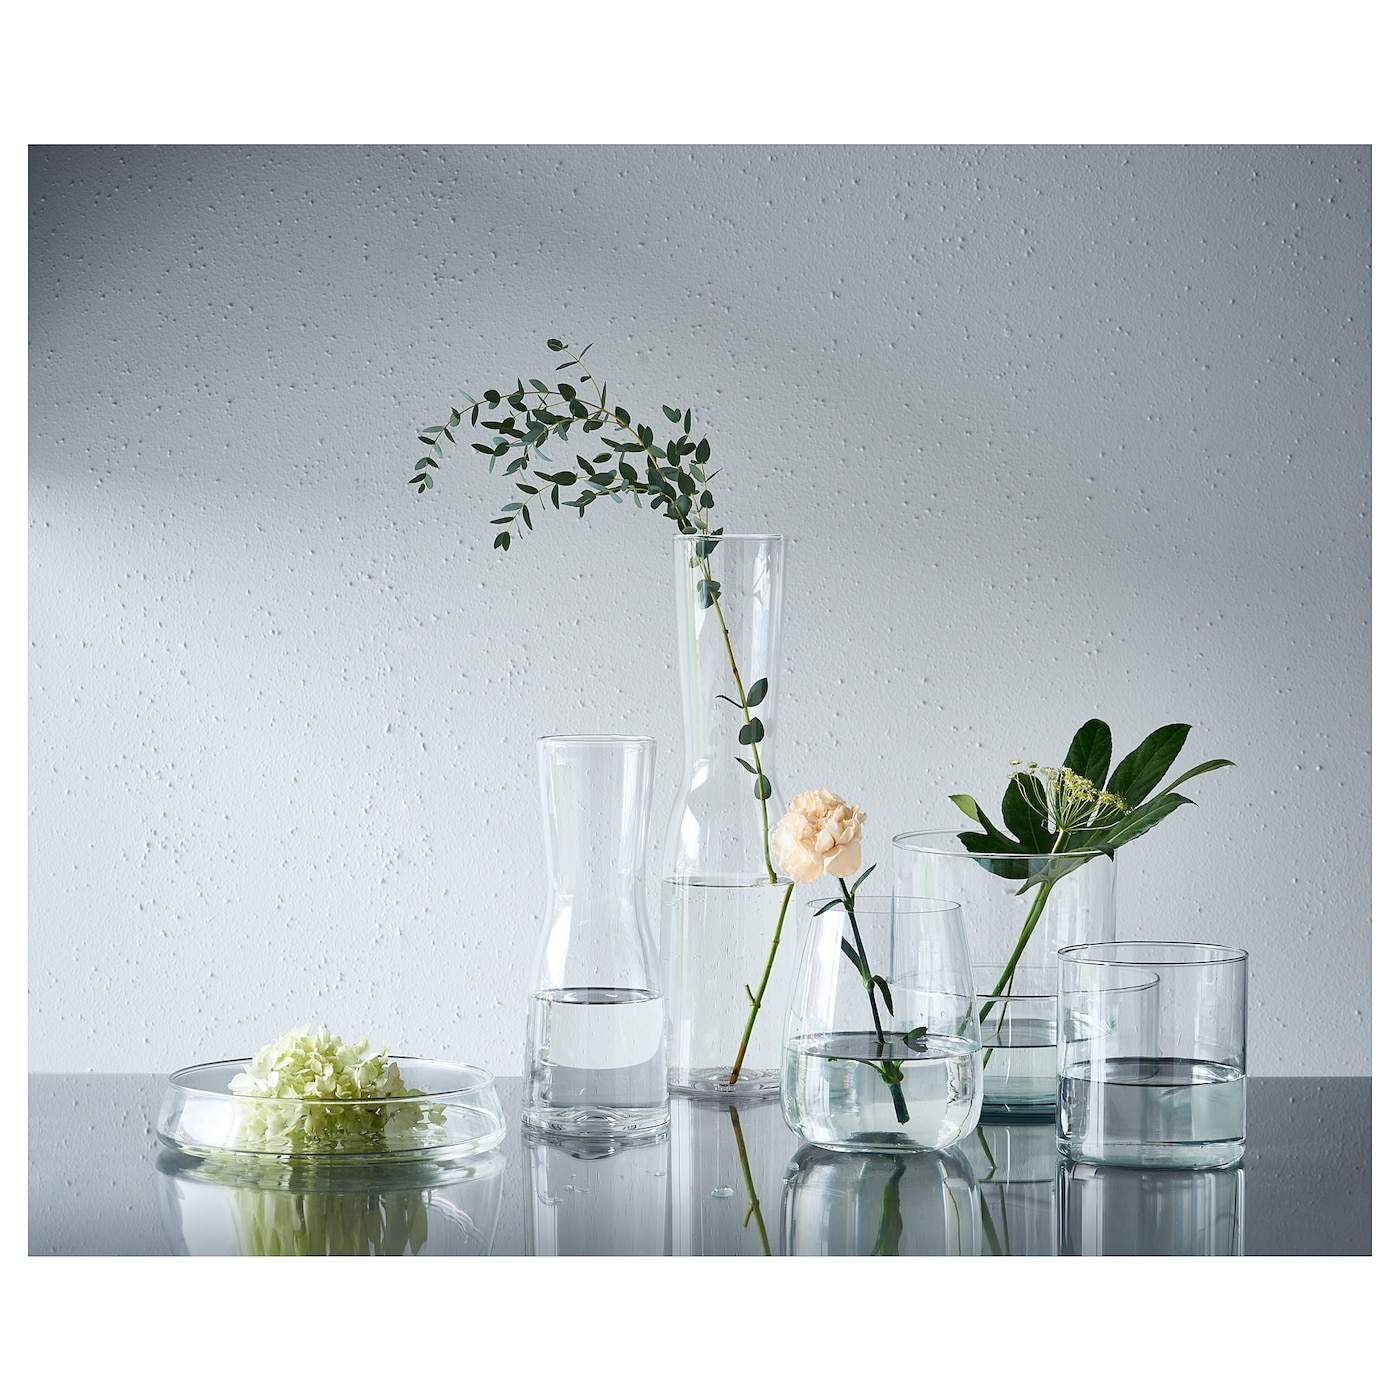 IKEA CYLINDER vase/bowl, set of 3 Can be stacked inside one another to save room when storing.